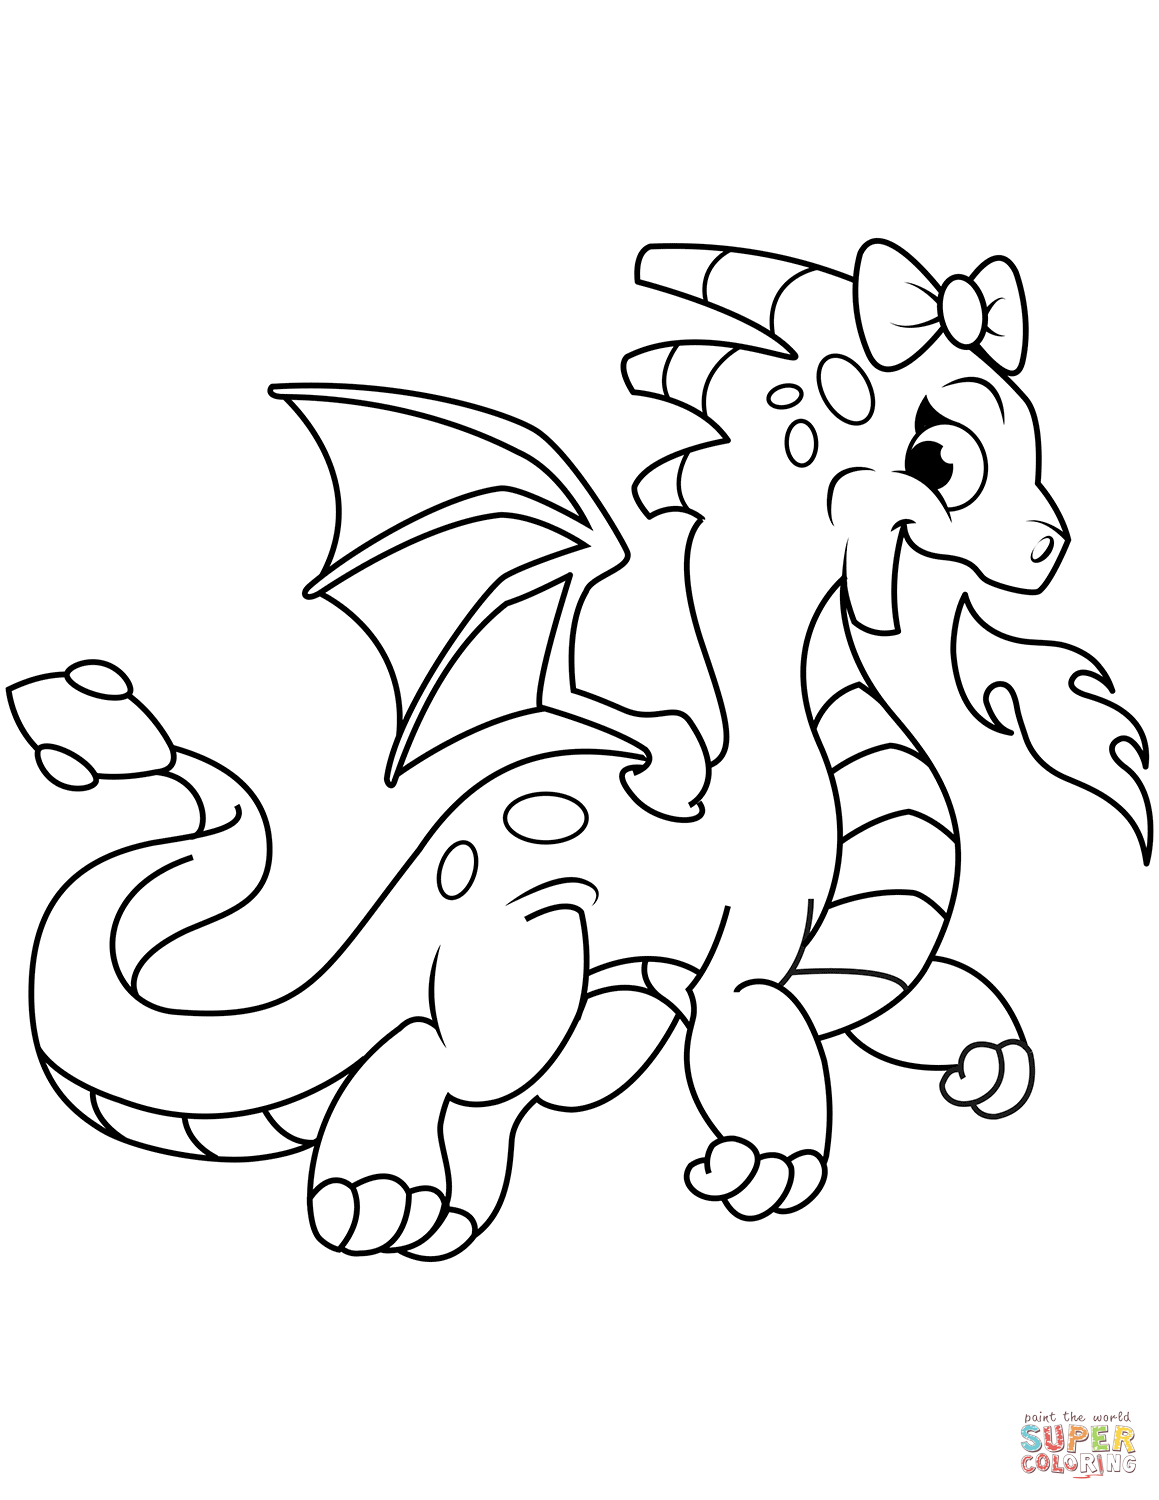 coloring pages of cute dragons cute little dragon coloring page free printable coloring coloring pages of dragons cute